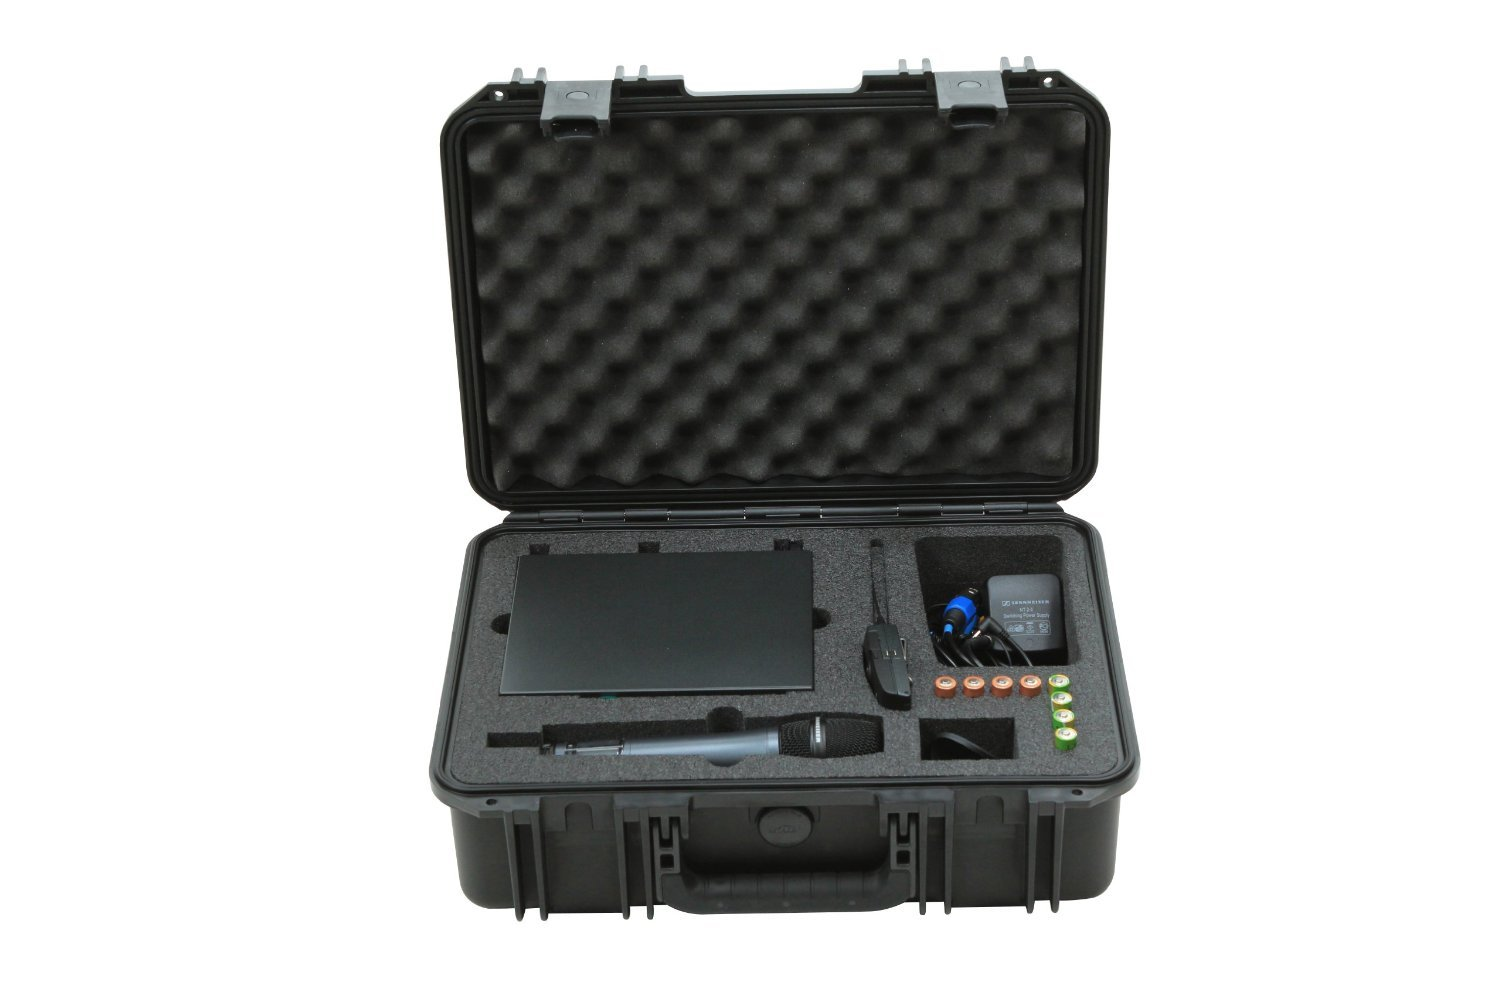 SKB 3I-1711-SEW iSeries Injection Molded Case for Sennheiser EW-100 SKB Cases